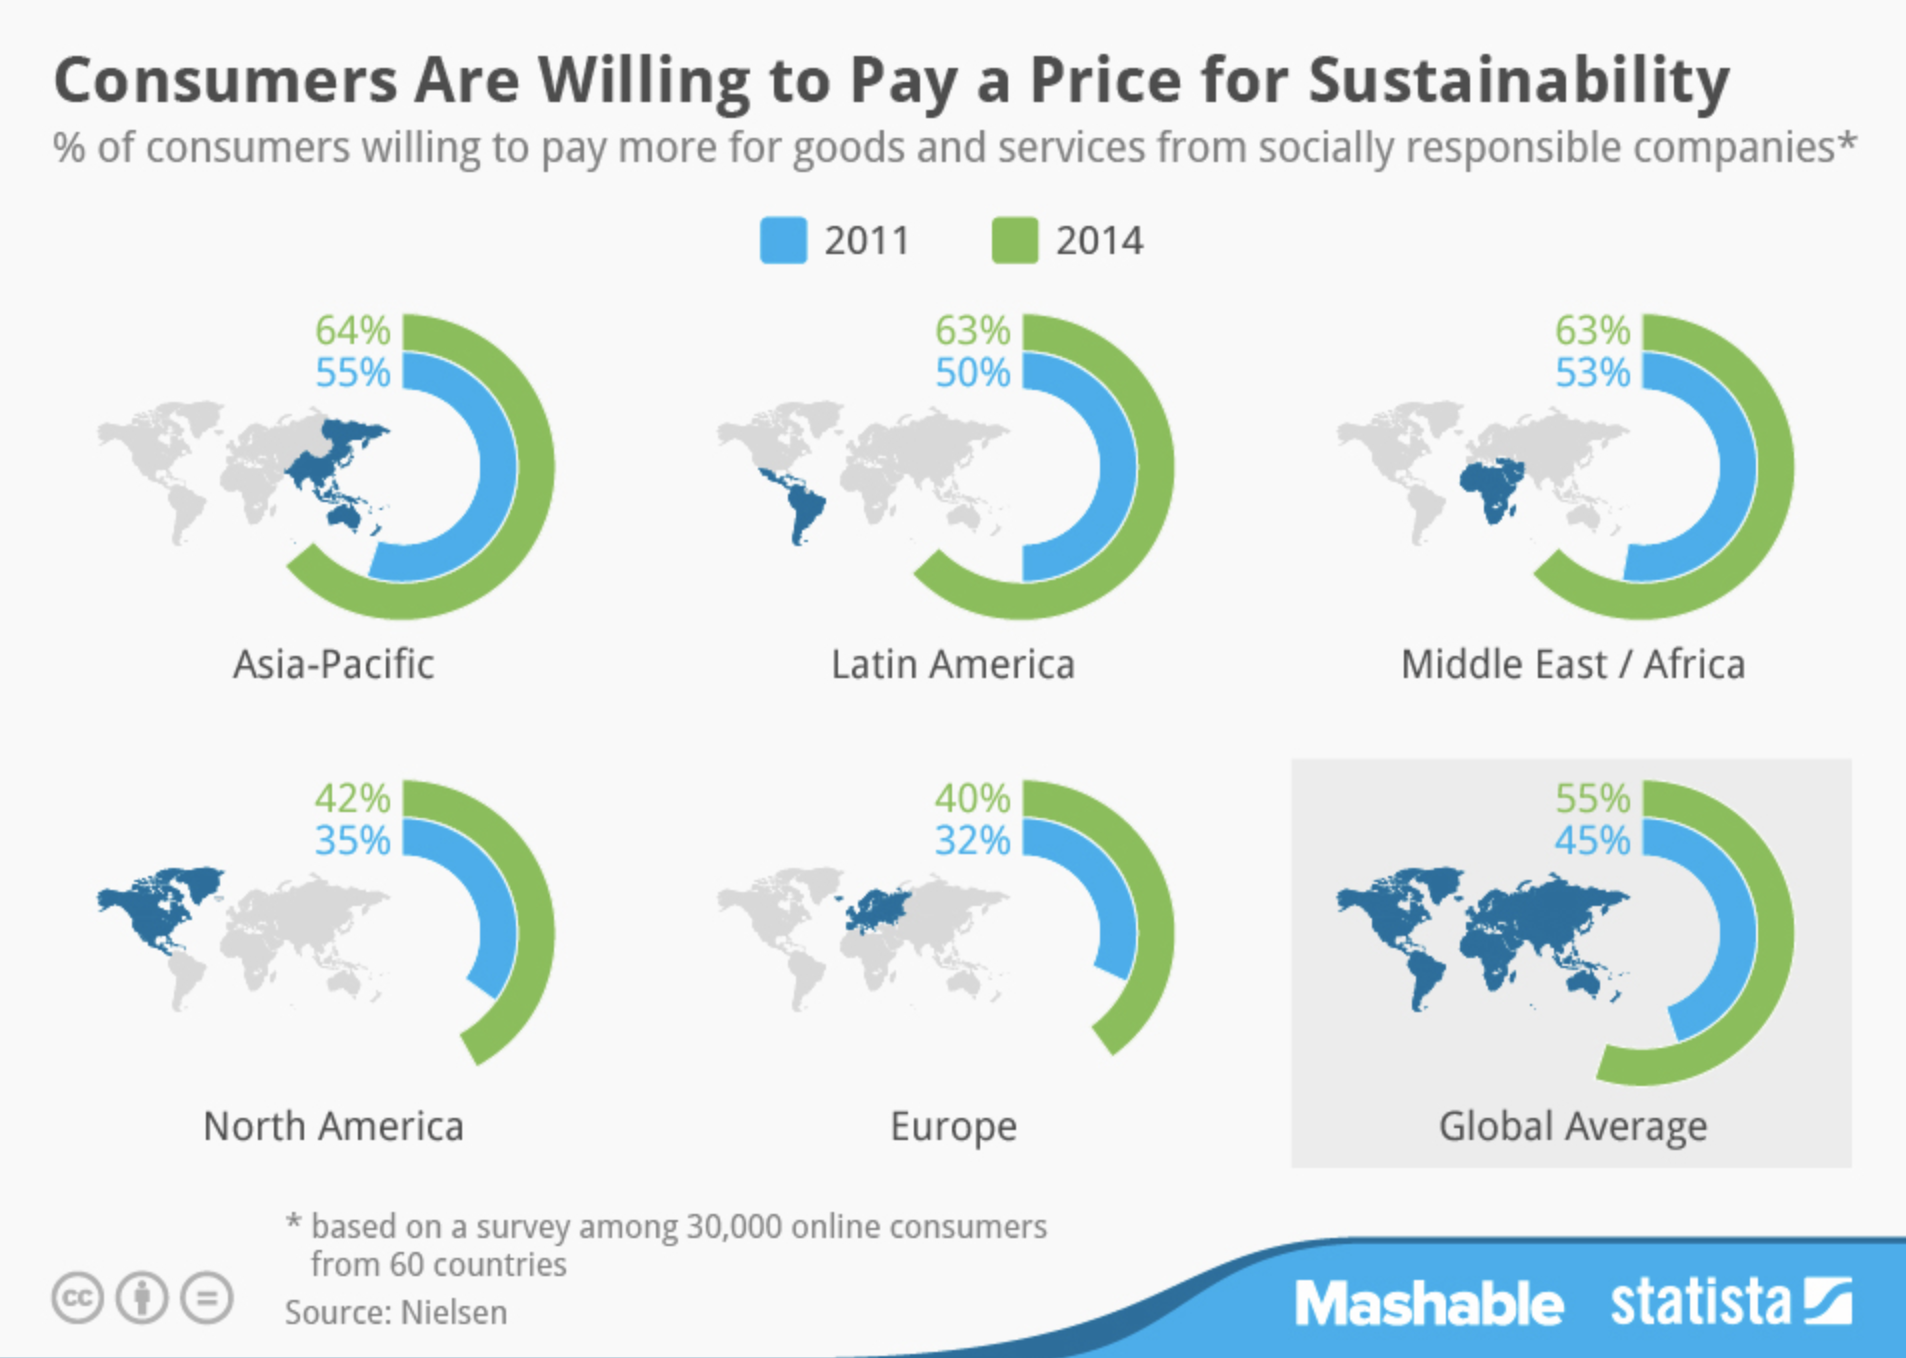 Nielsen's survey results showed consumers' increasing willingness to purchase sustainably around the globe